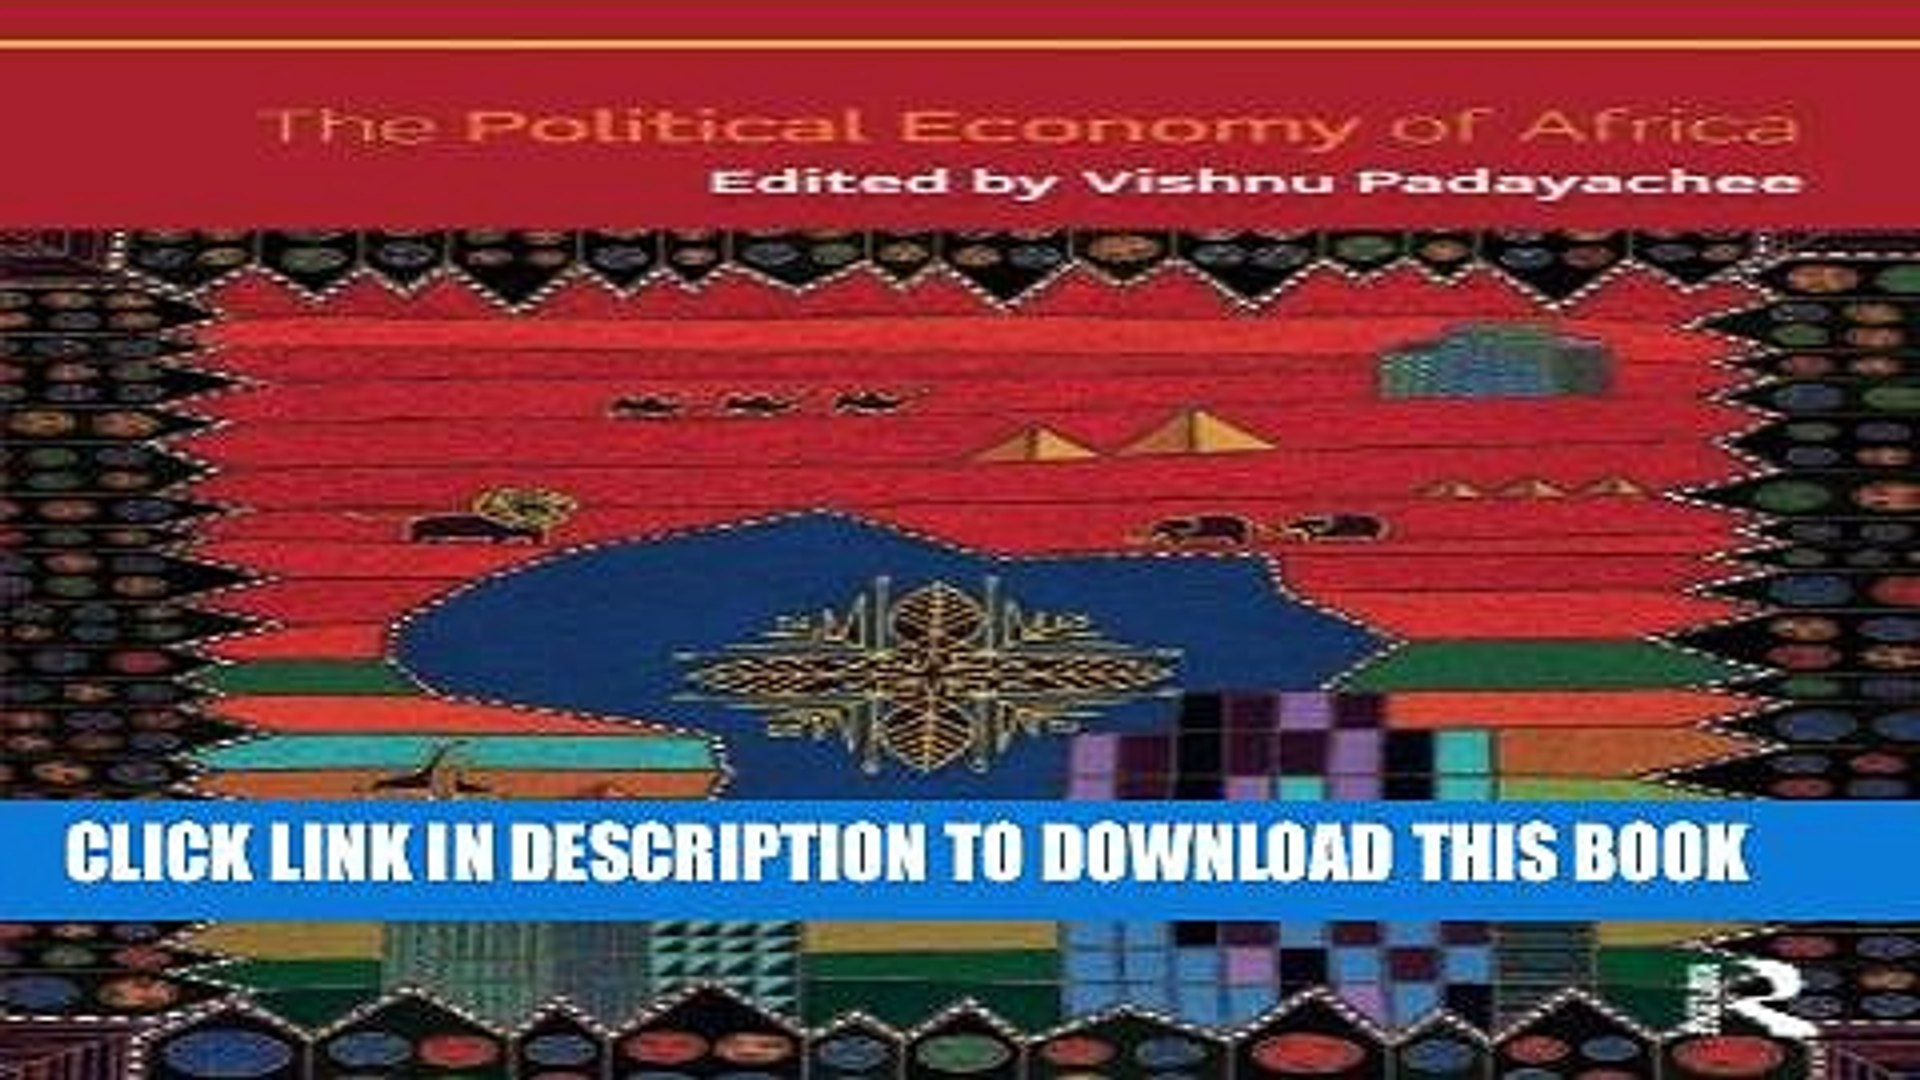 Best Seller The Political Economy of Africa Free Read